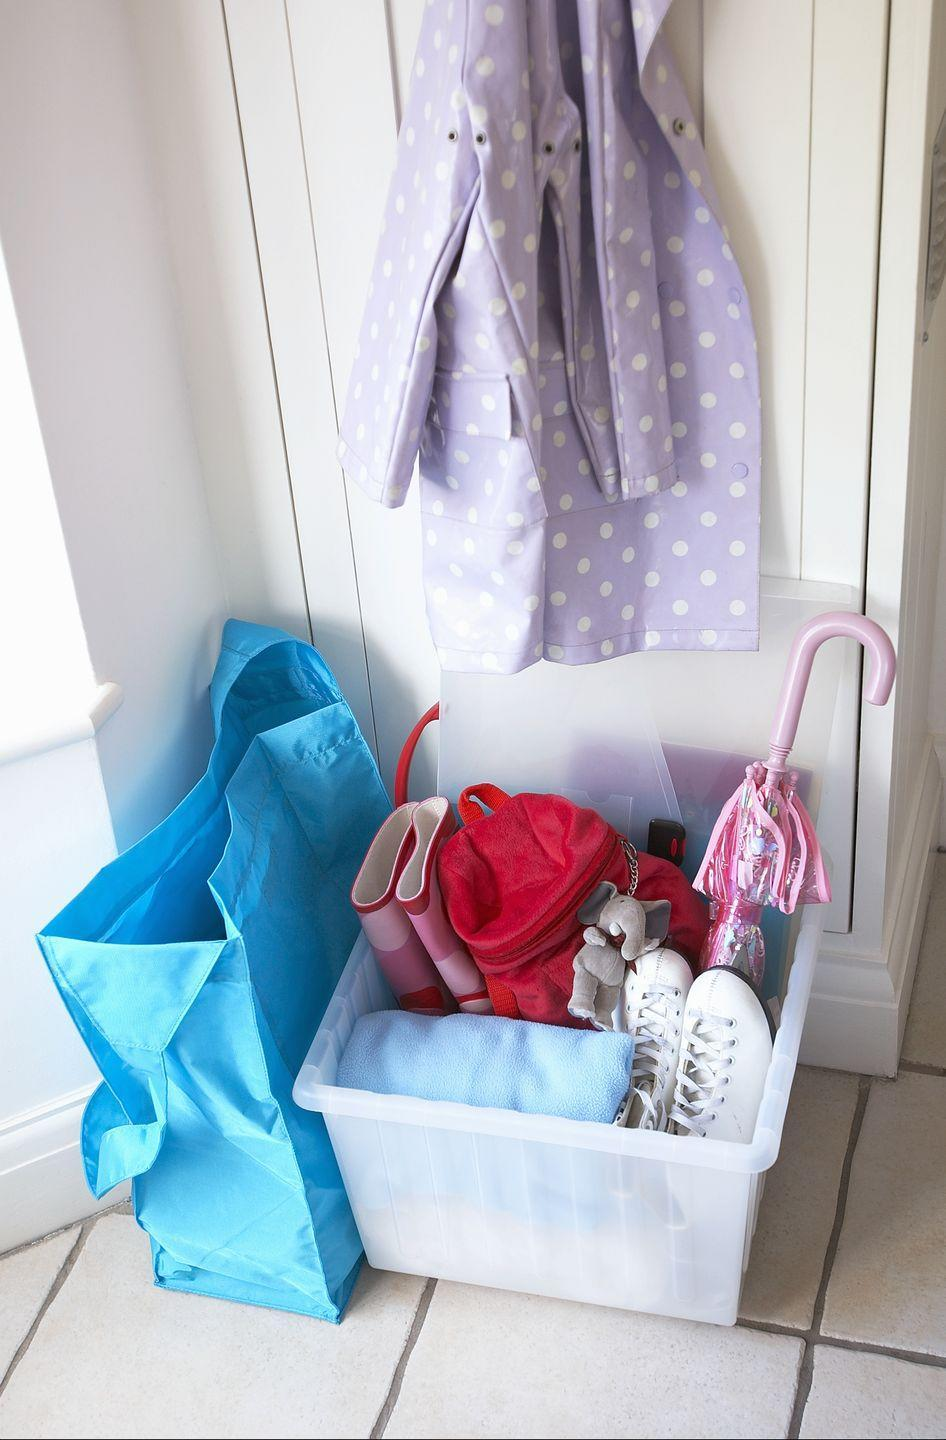 """<p>It seems counterintuitive to your battle against clutter to <a href=""""https://www.goodhousekeeping.com/home/organizing/tips/a32505/organizing-on-autopilot/"""" rel=""""nofollow noopener"""" target=""""_blank"""" data-ylk=""""slk:create a place where you leave piles of stuff"""" class=""""link rapid-noclick-resp"""">create a place where you leave piles of stuff</a>. Designating a spot for everyday items is the stopgap that prevents your entire home from filling with unnecessary clutter. </p>"""